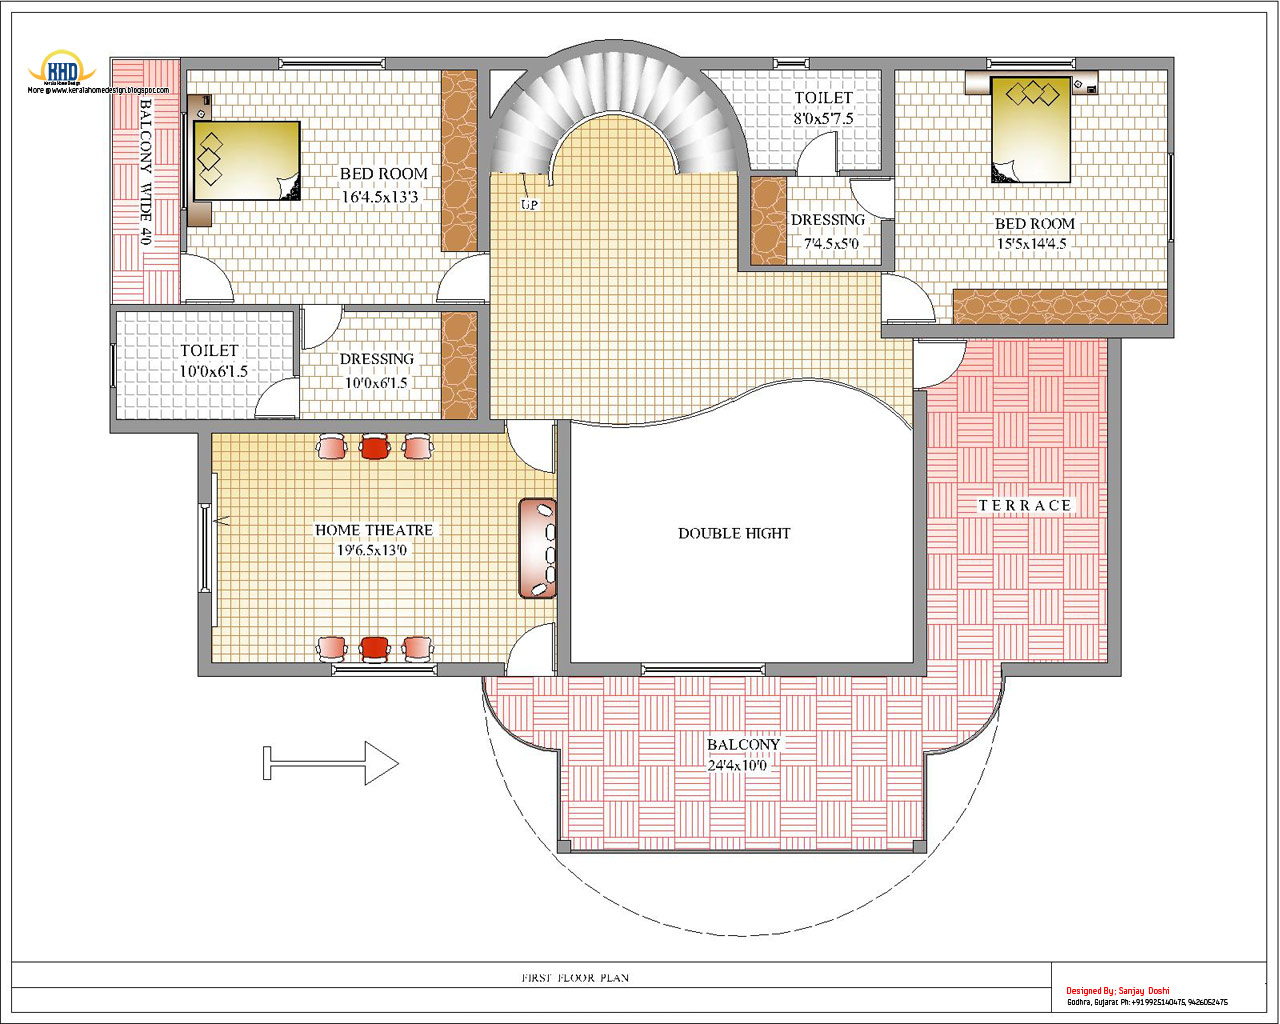 Best duplex plan house in india house design plans for Best duplex plans